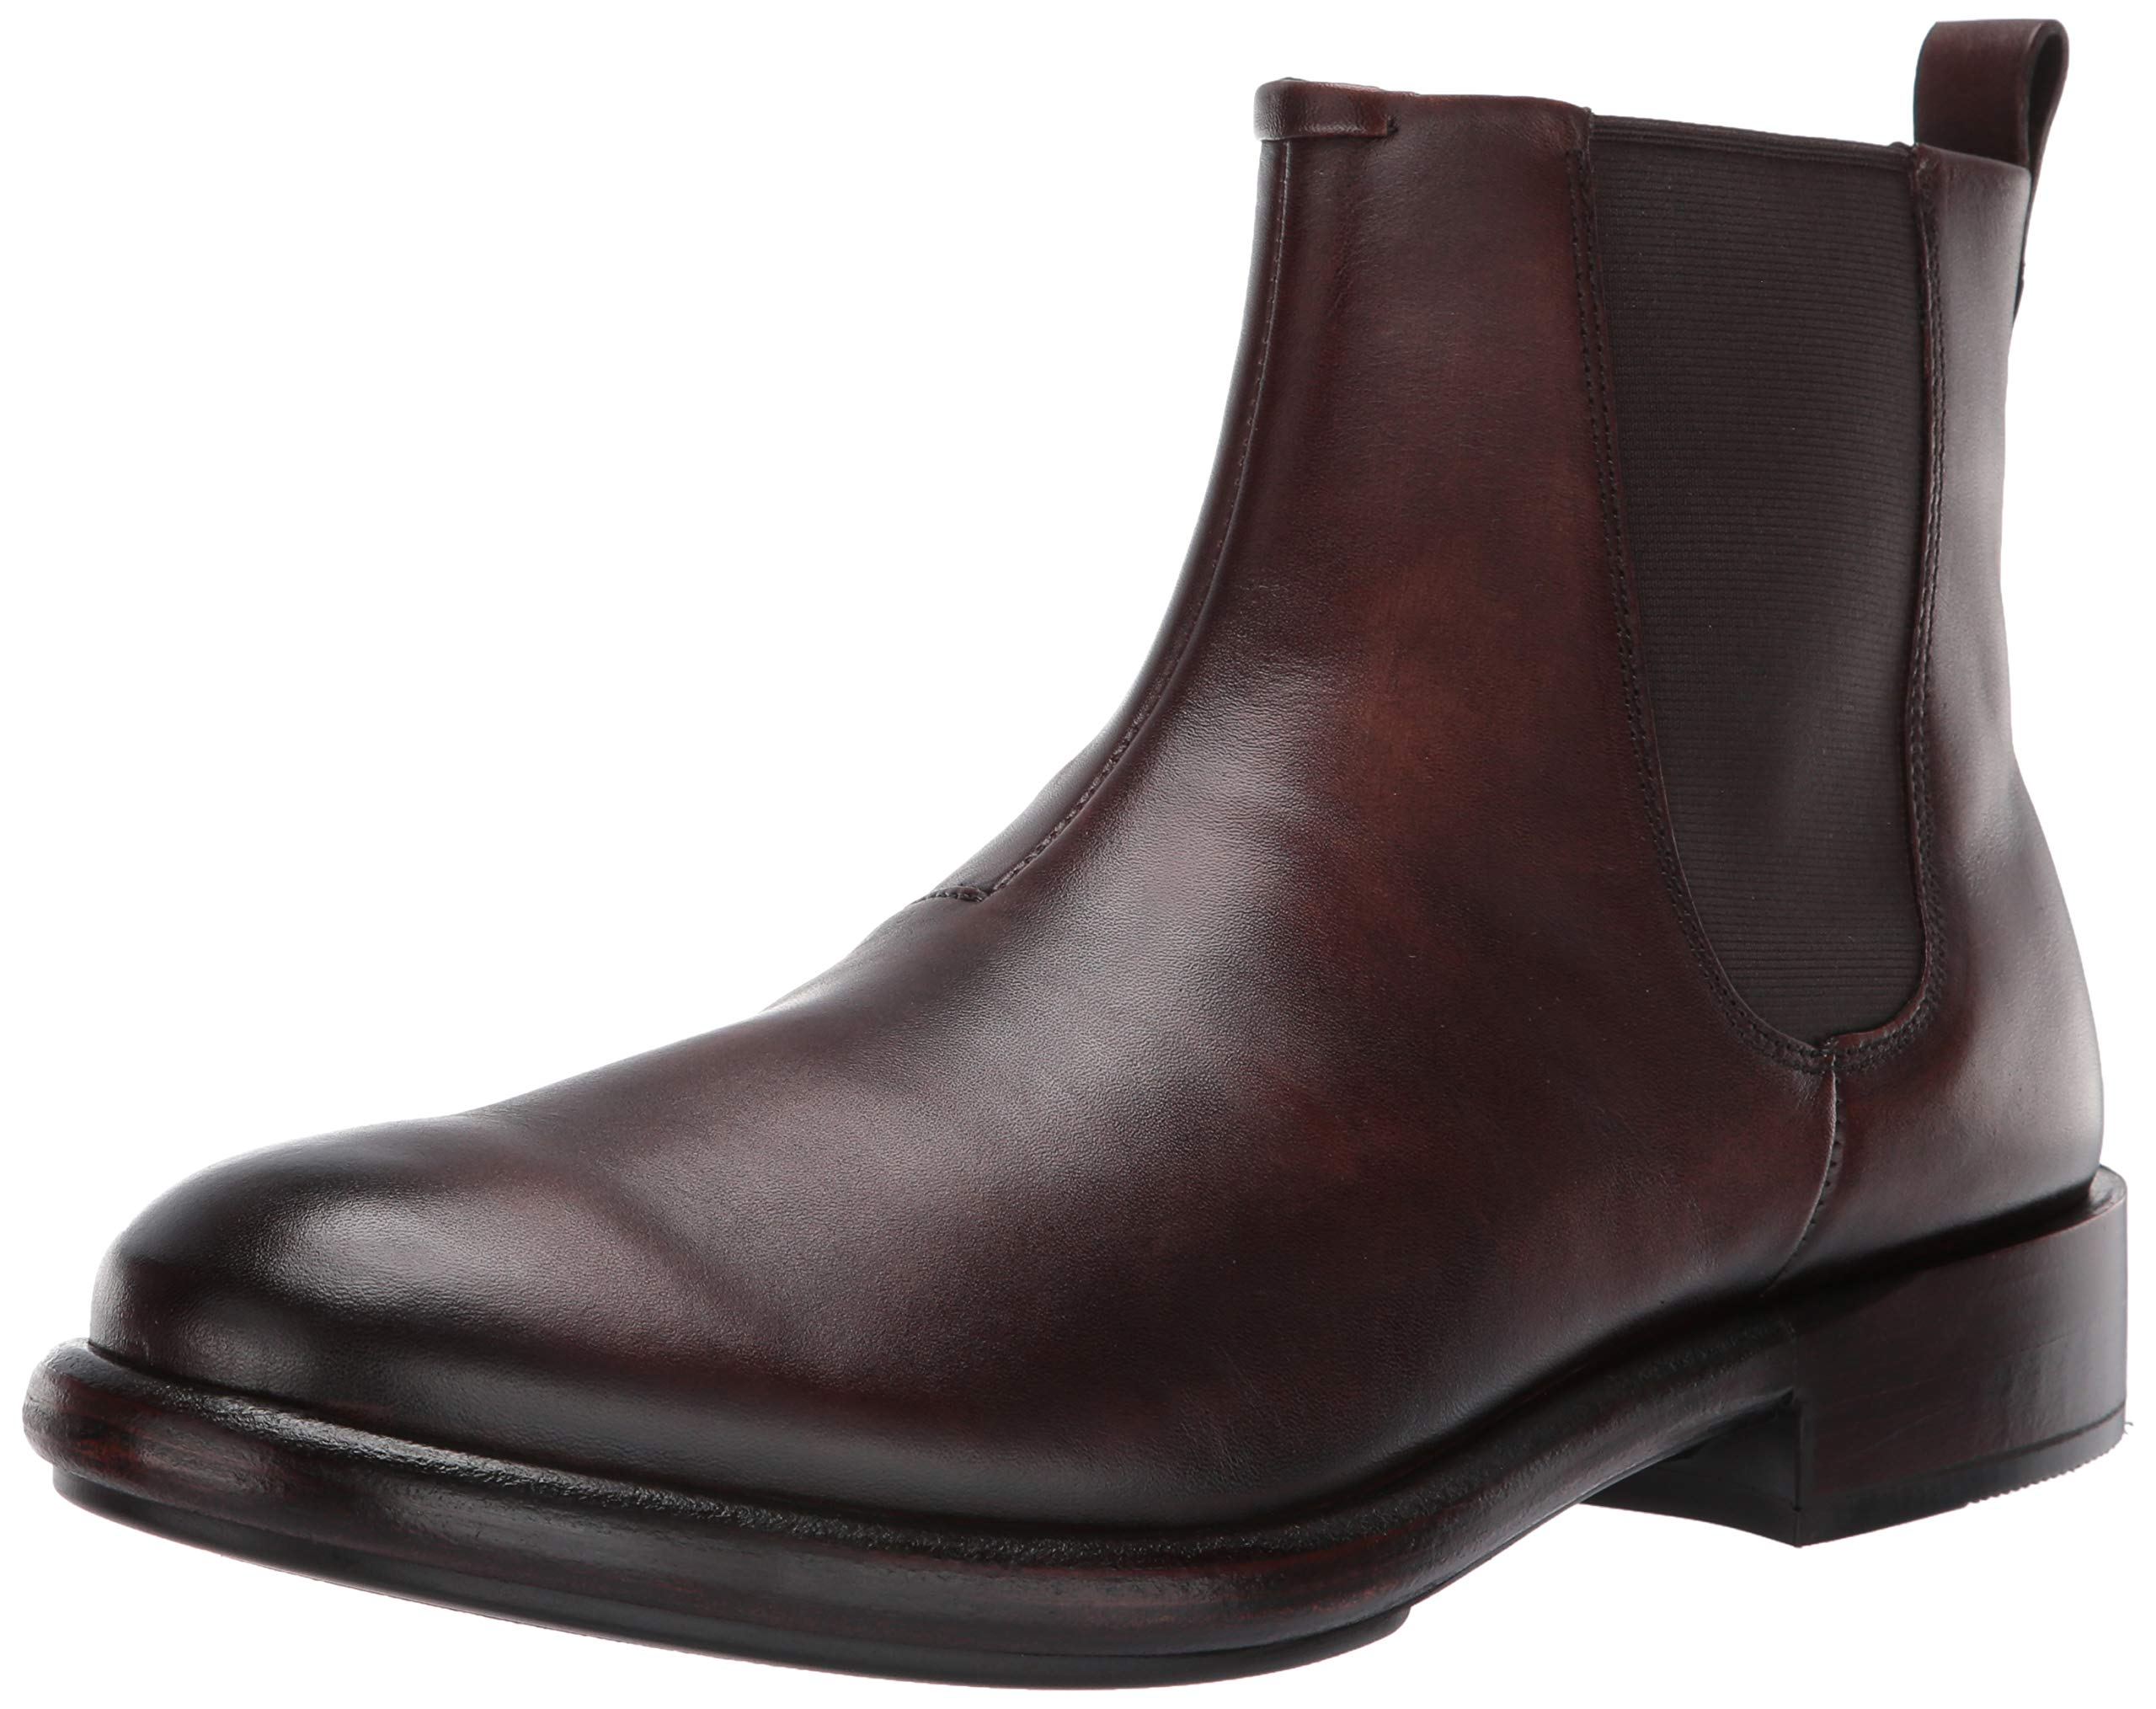 ECCO Men's Stealth Artisan Chelsea Ankle Boot, Cocoa Brown, 42 M EU (8-8.5 US)